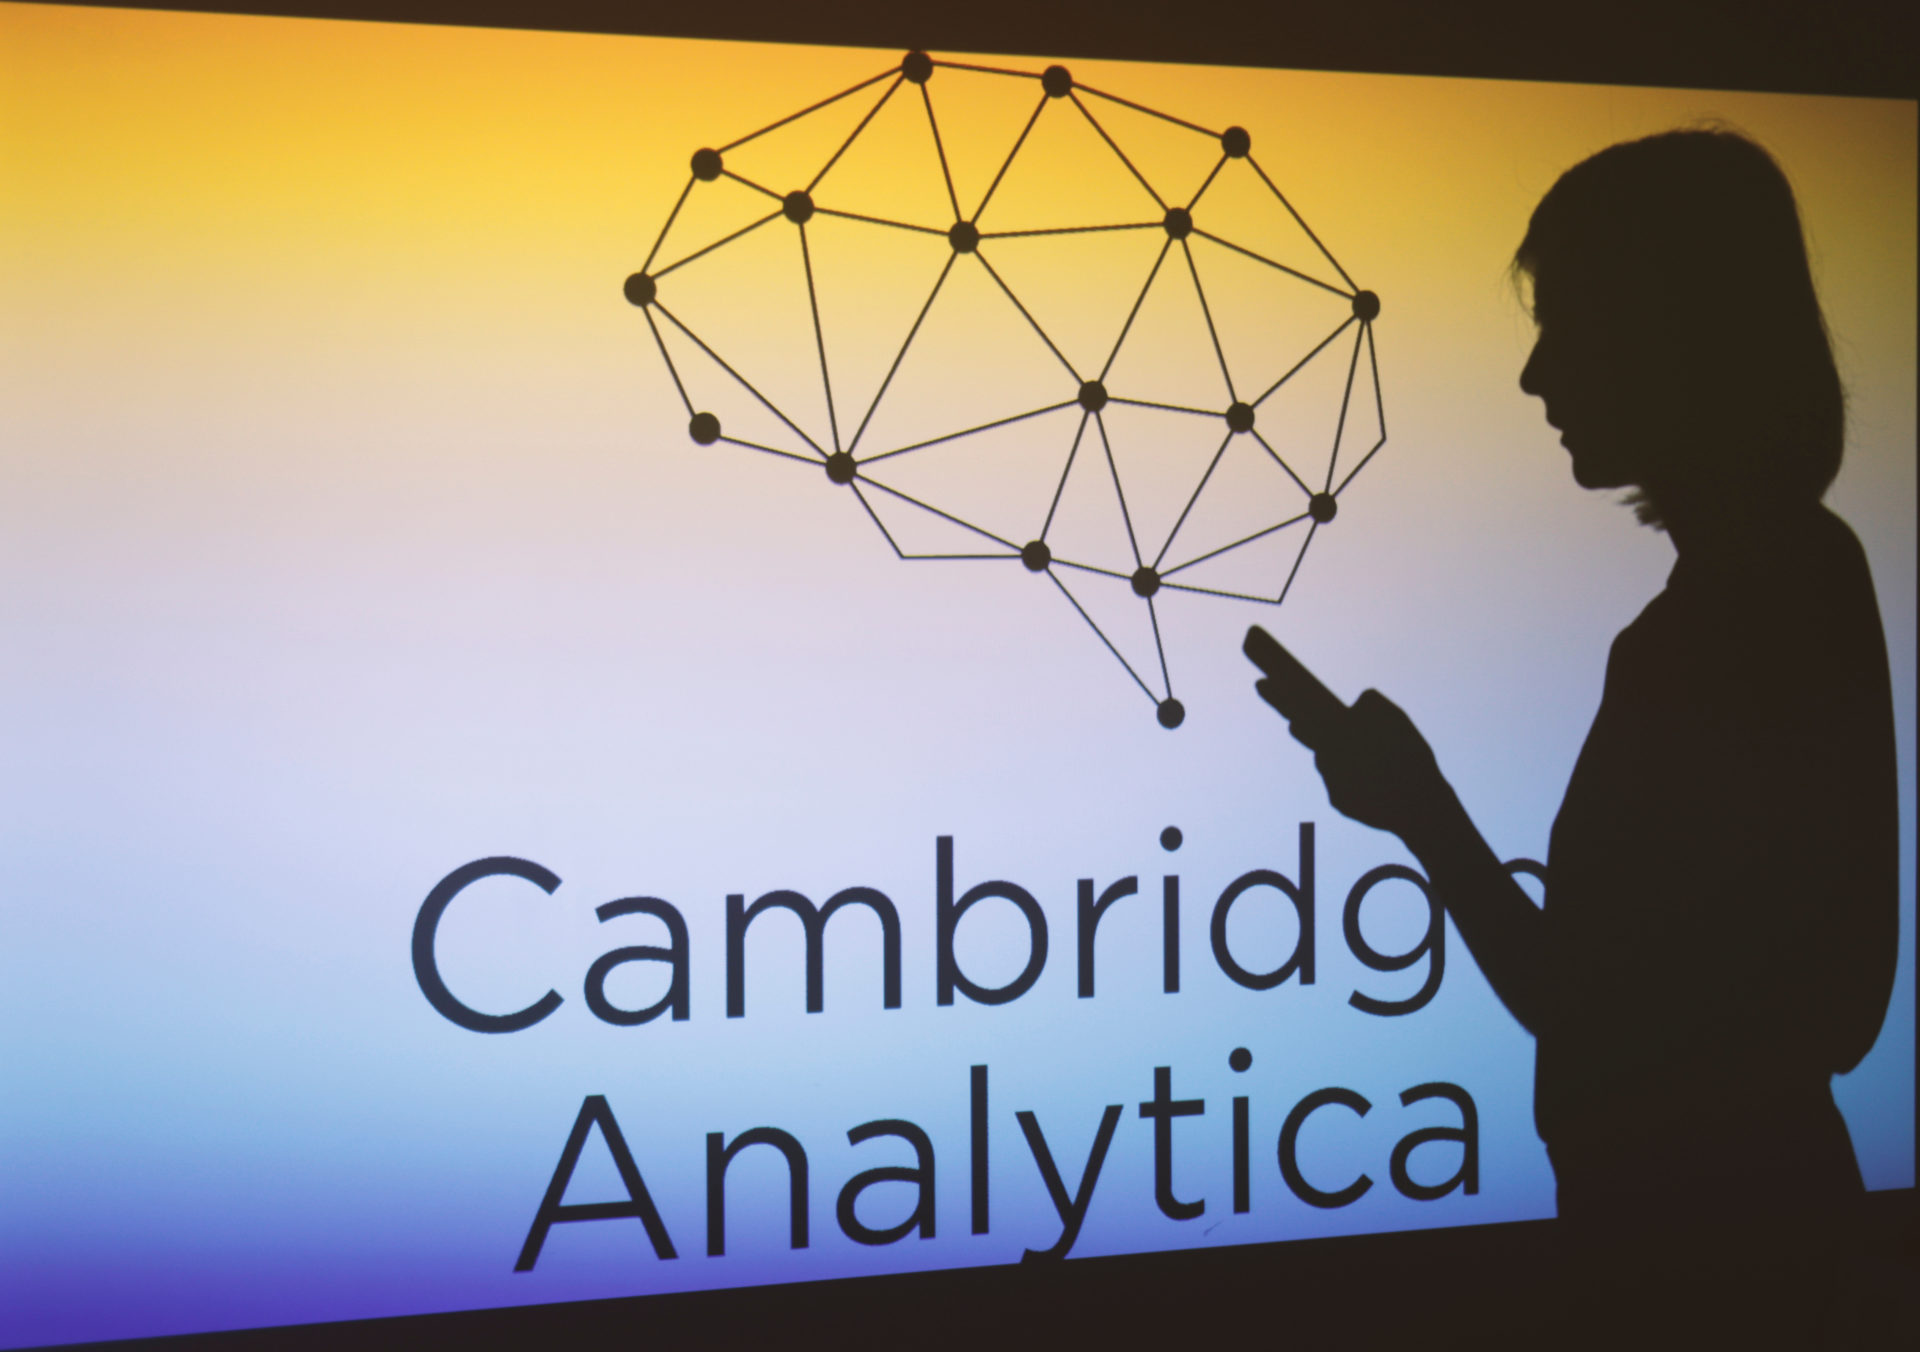 Cambridge Analytica among most controversial companies of 2018